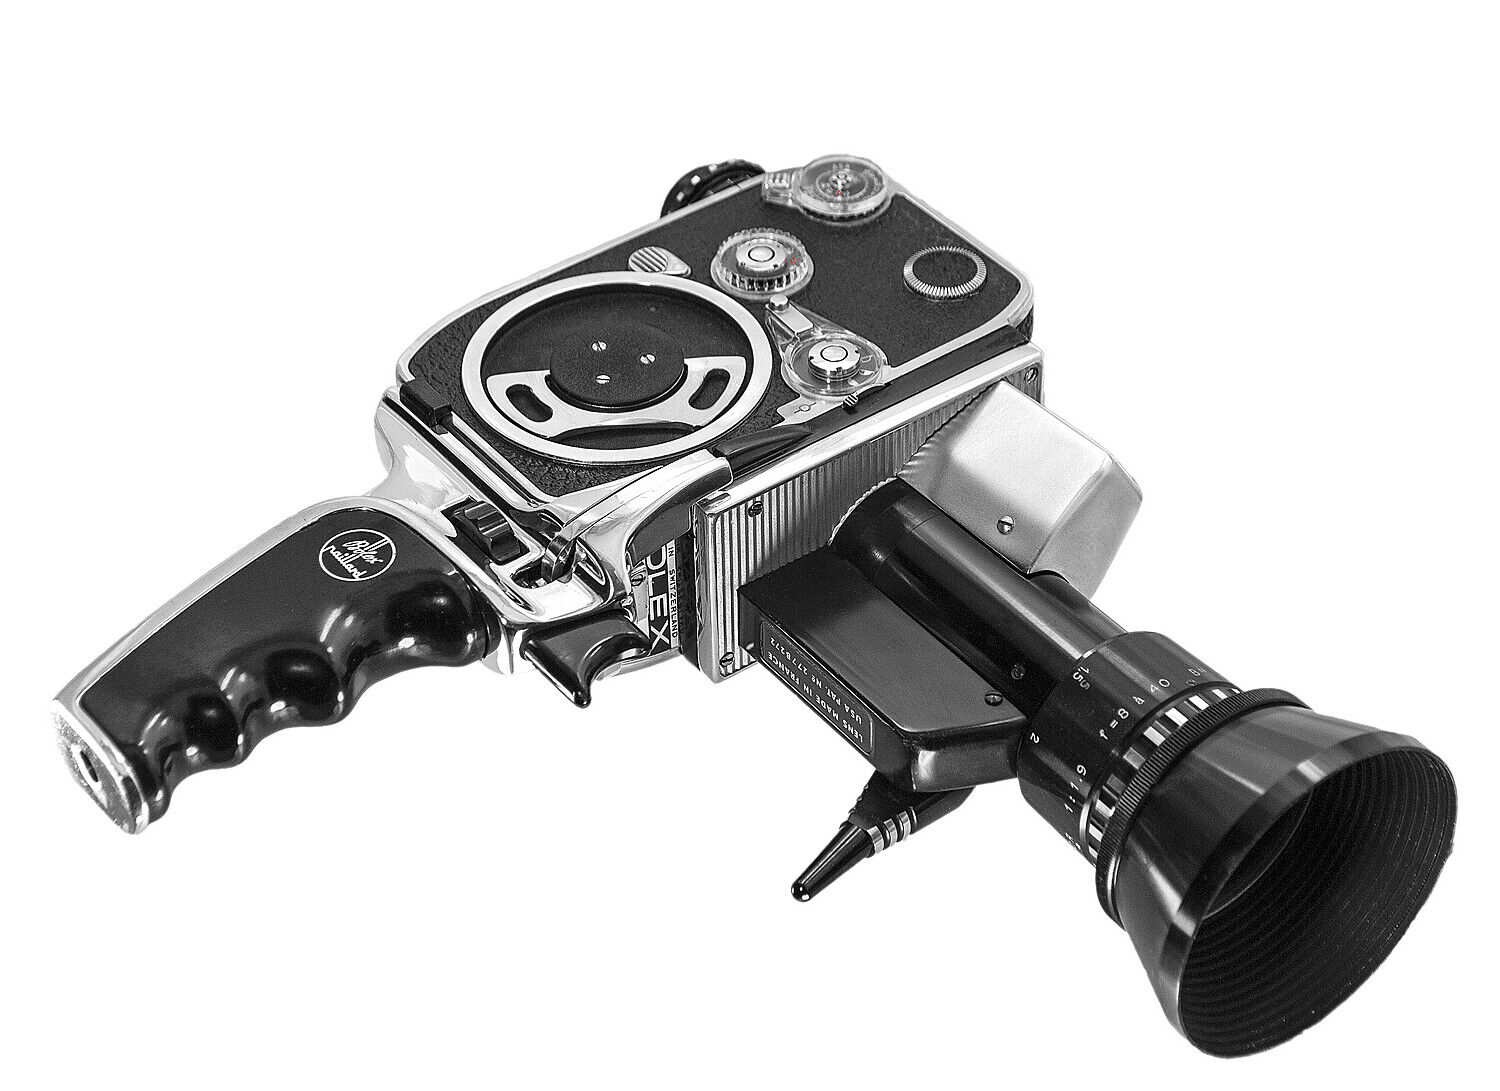 BOLEX P1 8MM REFLEX CAMERA / OVERHAULED / 30 DAY WARRANTY / FREE MANUALS - $449.00